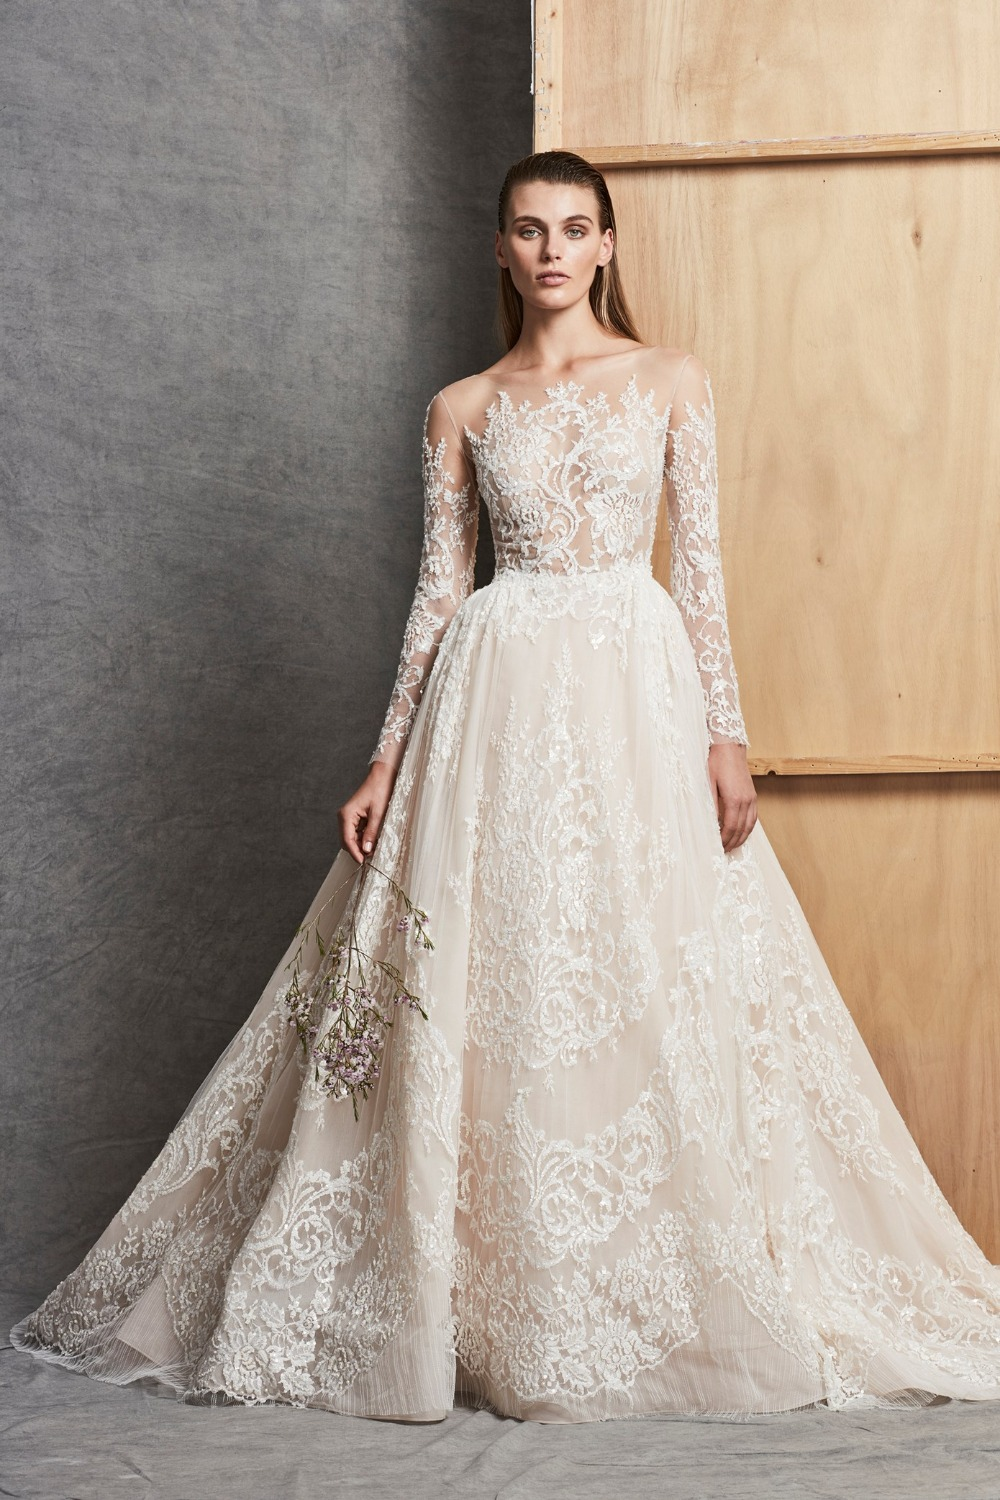 How Do I Know Who Designed My Wedding Dress